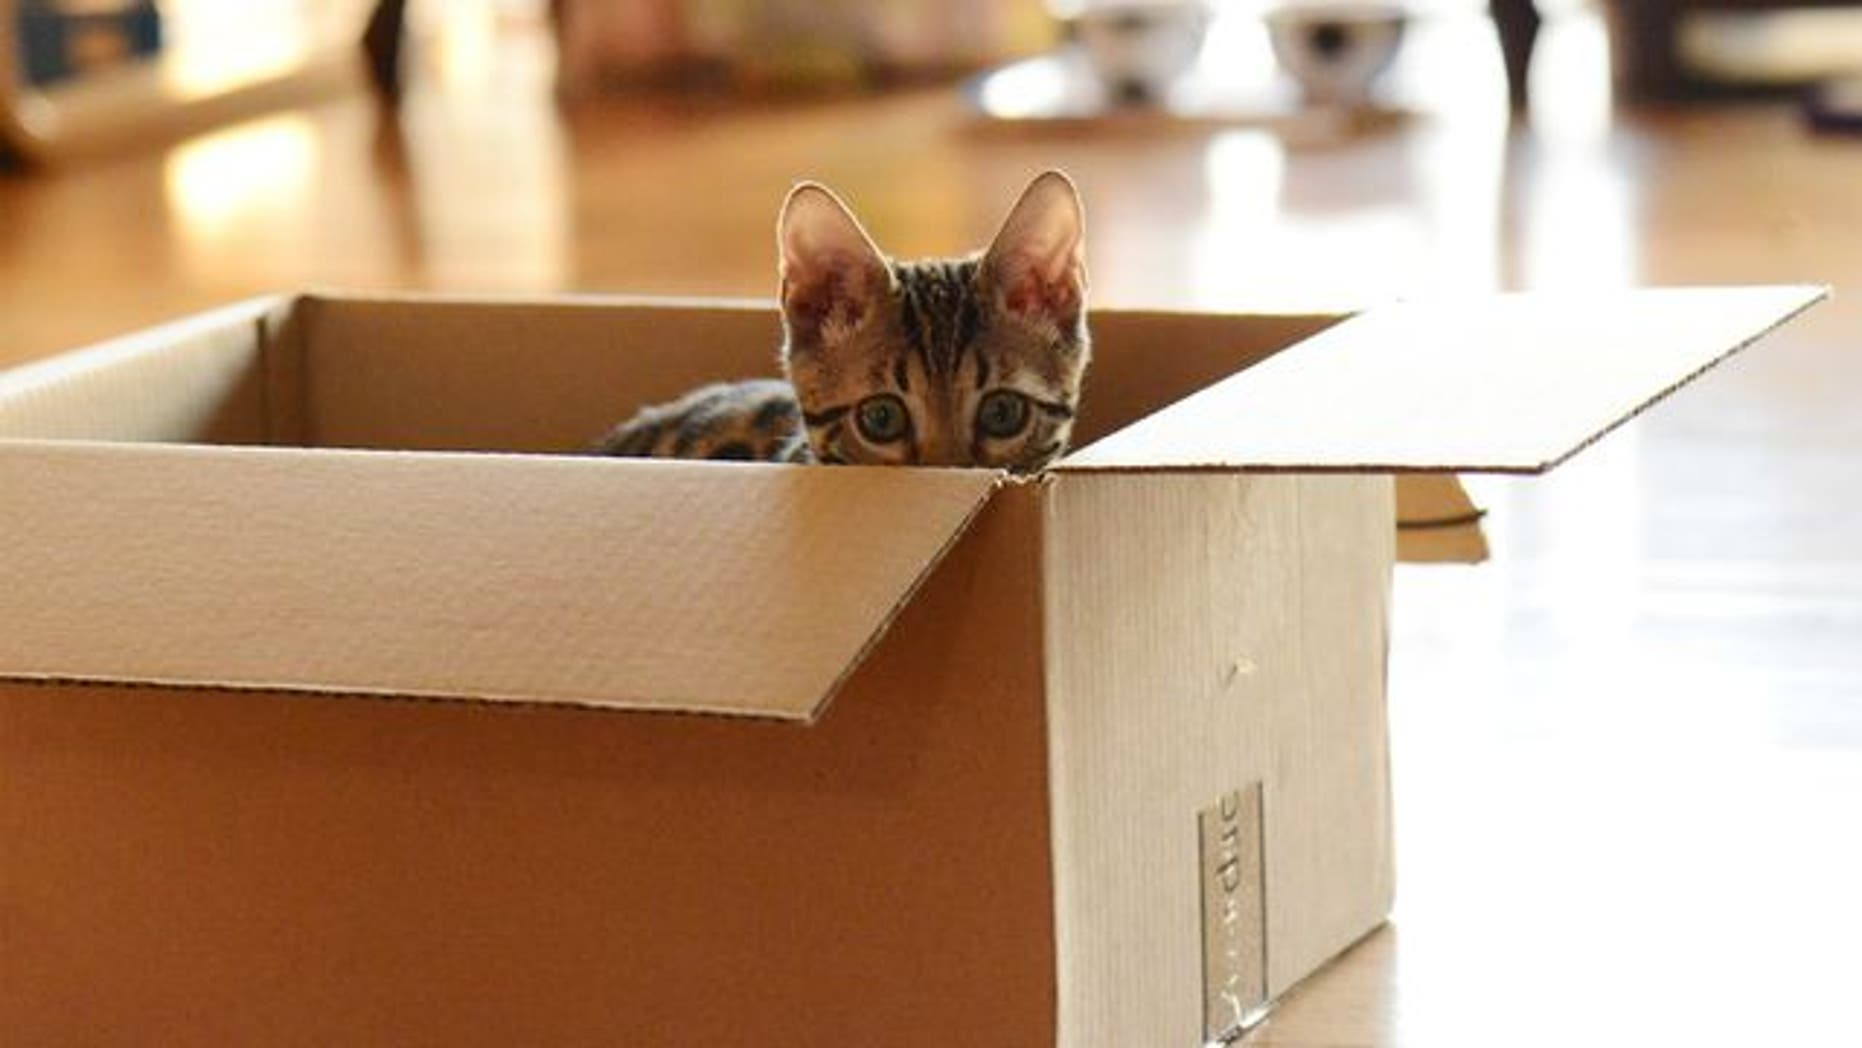 When looking at adopting, Hannah Shaw suggests people turn to shelters instead of choosing free kittens from maybe neighbors or classified ads.